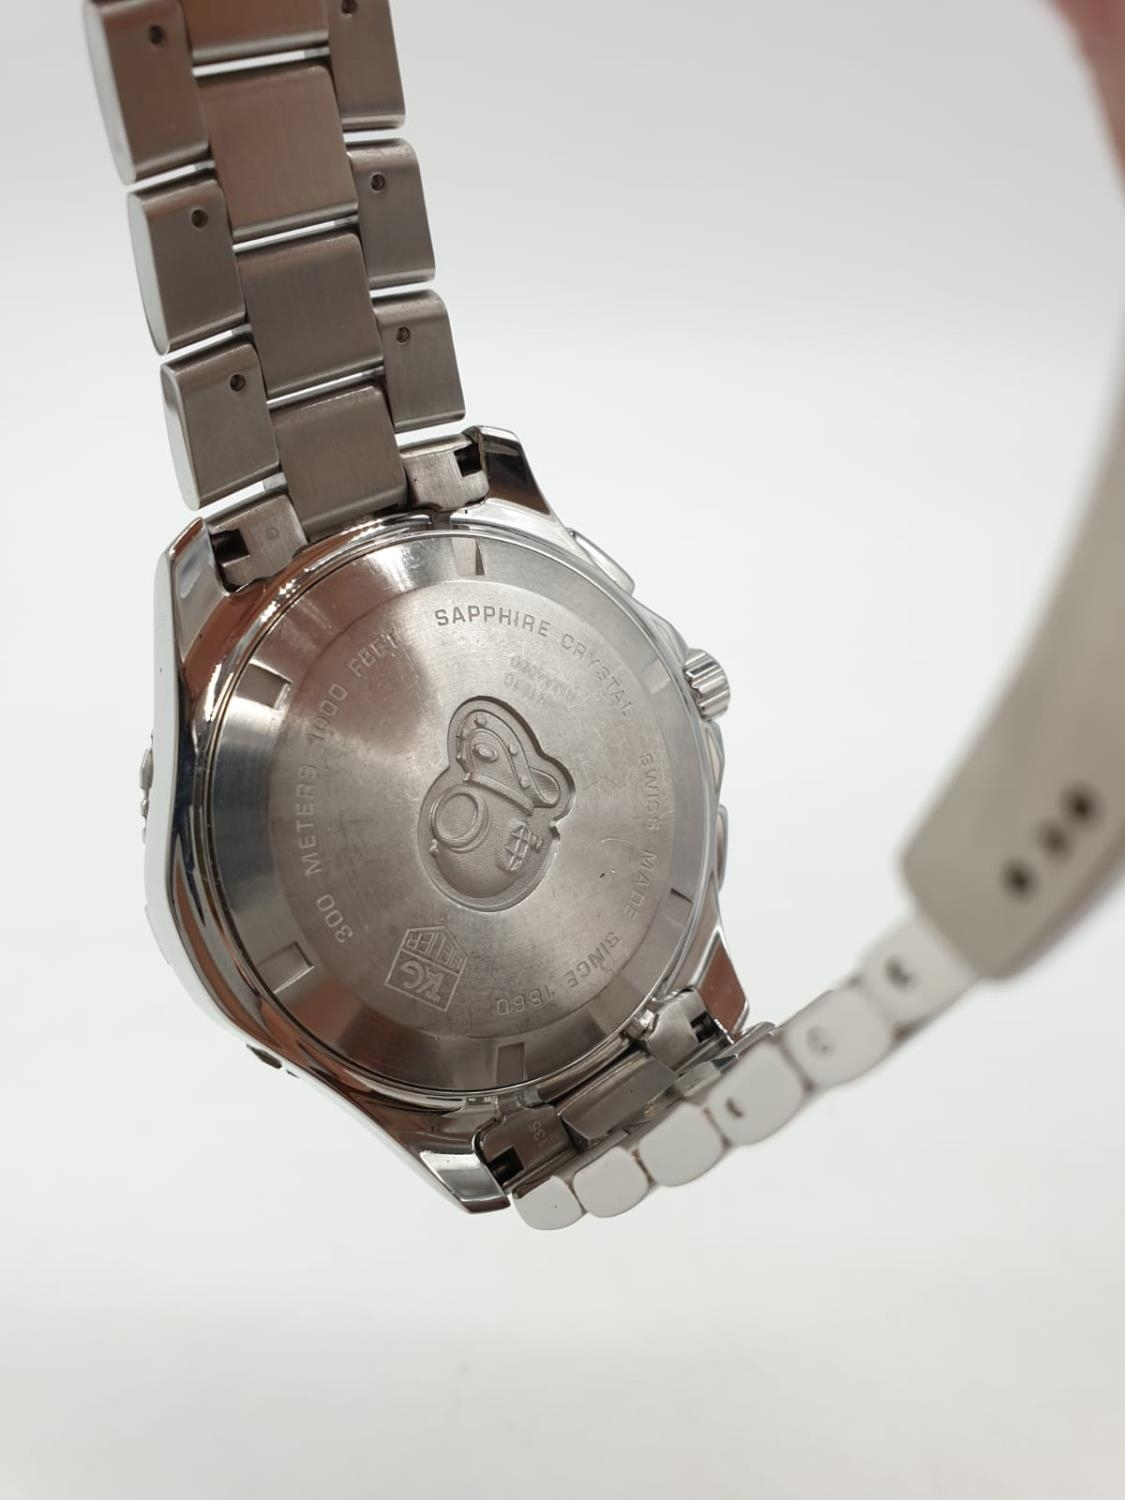 Tag Heuer gents chronograph Aquaracer watch, black face twisted bezel and steel strap, 44mm case - Image 7 of 14